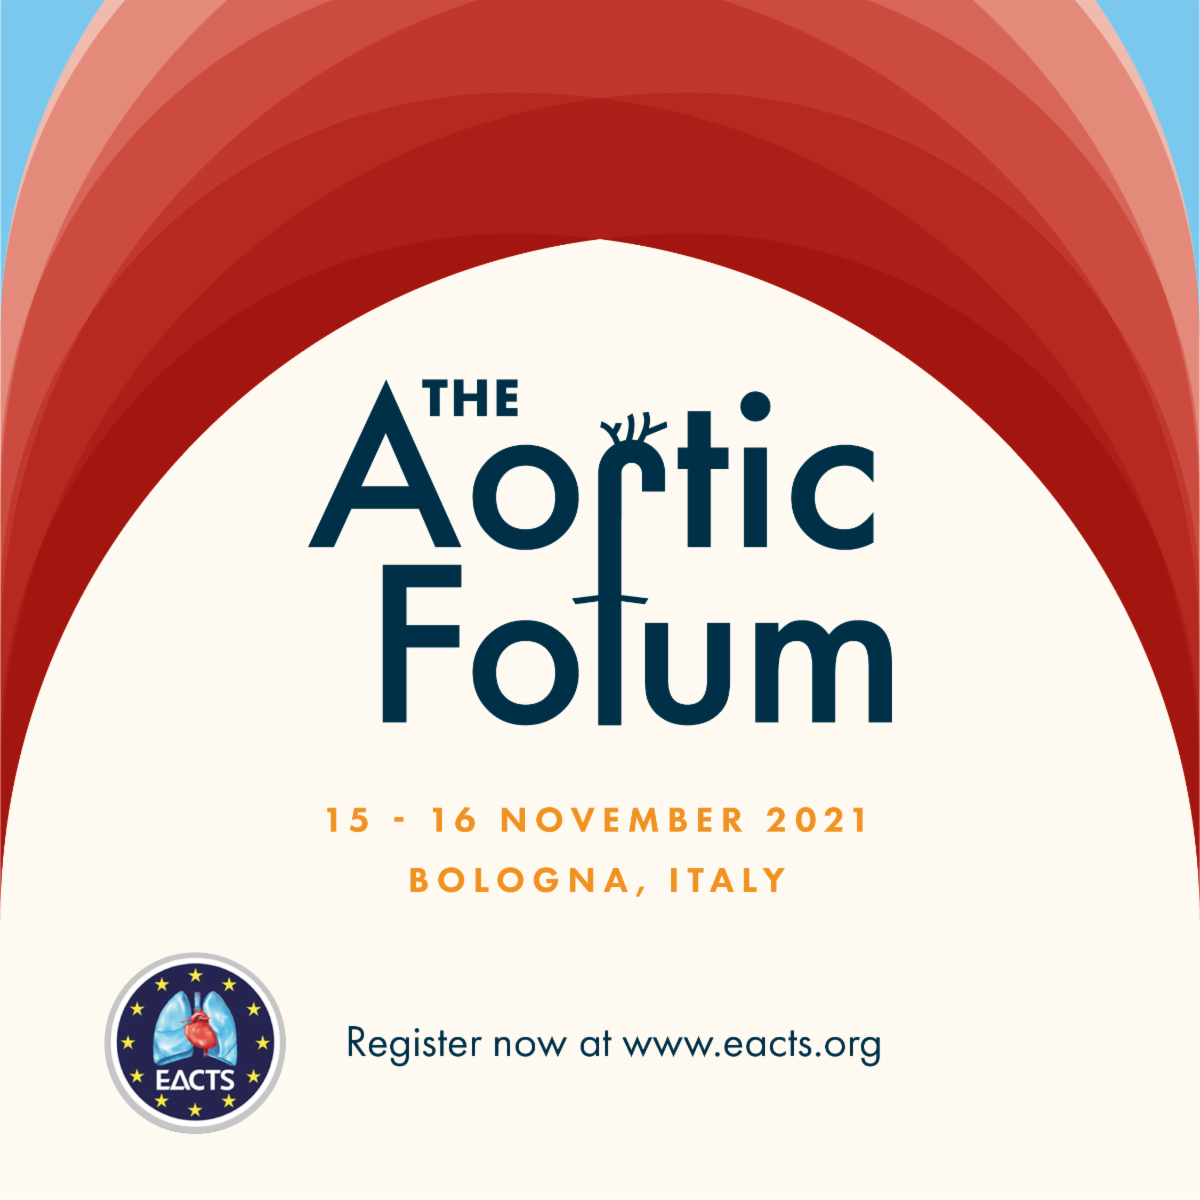 Looking ahead to the Aortic Forum